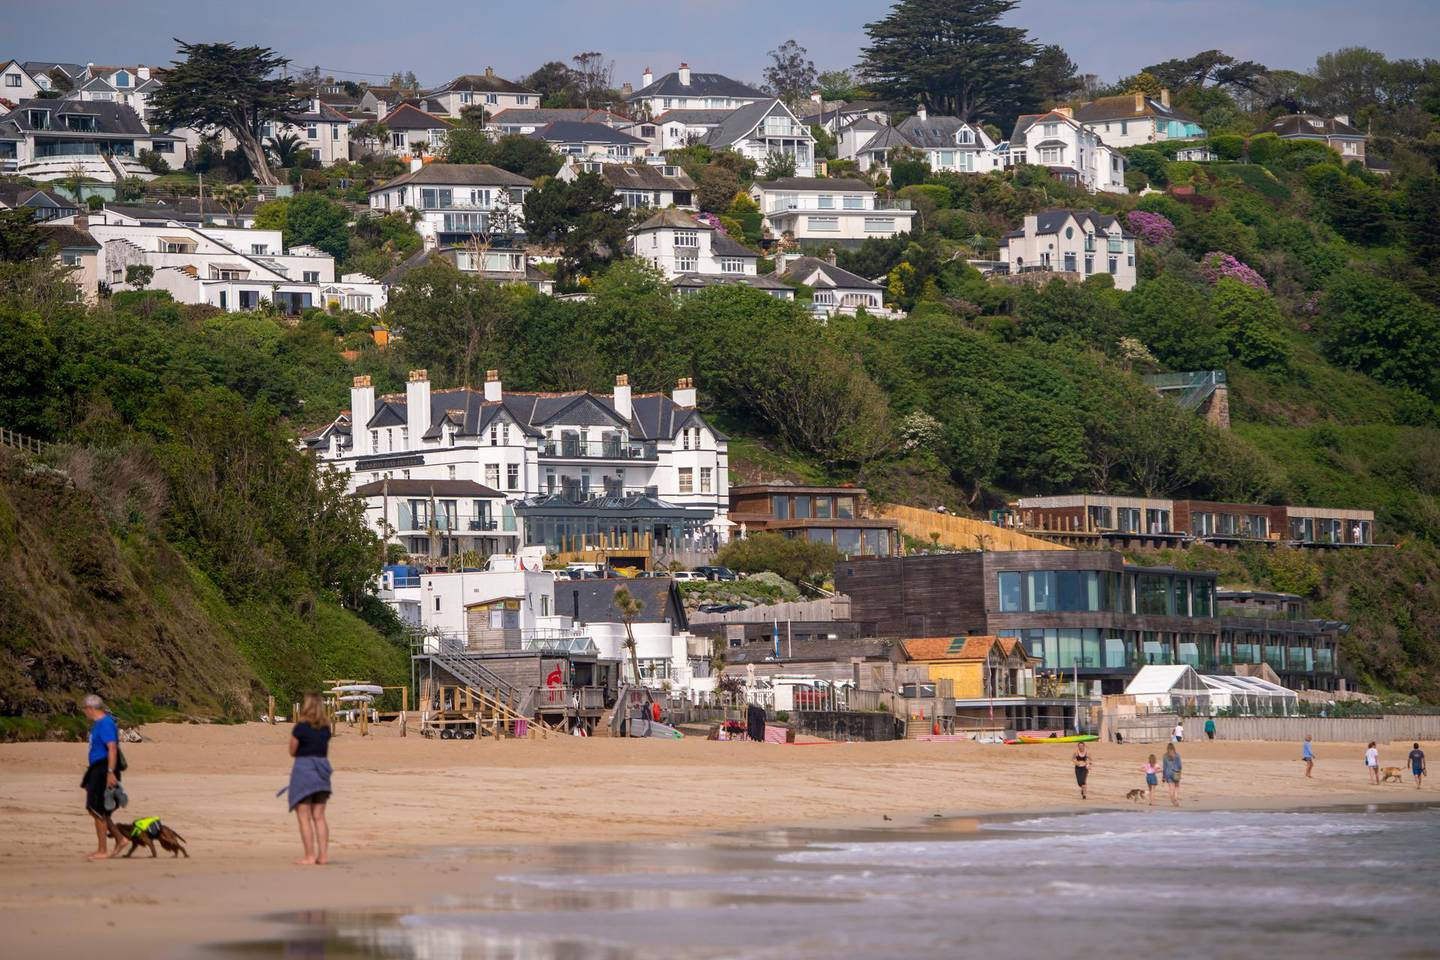 The Carbis Bay Hotel and Beach, the venue for the upcoming Group of Seven leaders summit, in Carbis Bay, U.K., on Thursday, June 3, 2021. The G-7 nations plans to launch a green alternative to China's Belt and Road initiative when the leaders meet at a summit next week, according to two people familiar with the matter. Photographer: Anthony Devlin/Bloomberg